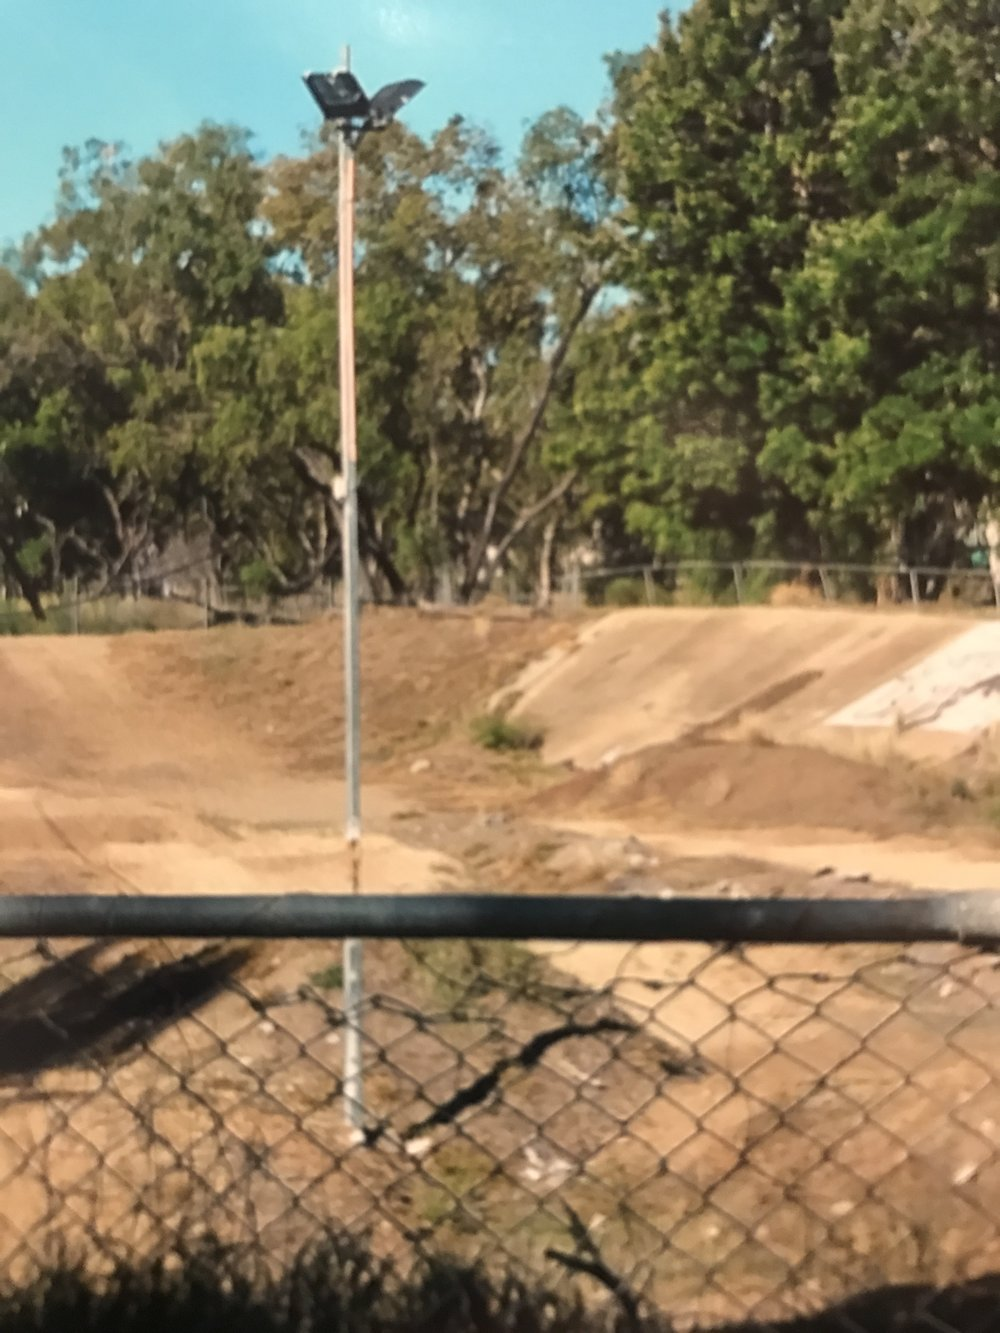 Canterbury CC Reunion - If the Moree Velodrome was in poor condition then its in worse shape now. This picture was taken some 6 weeks ago showing the velodrome banking.